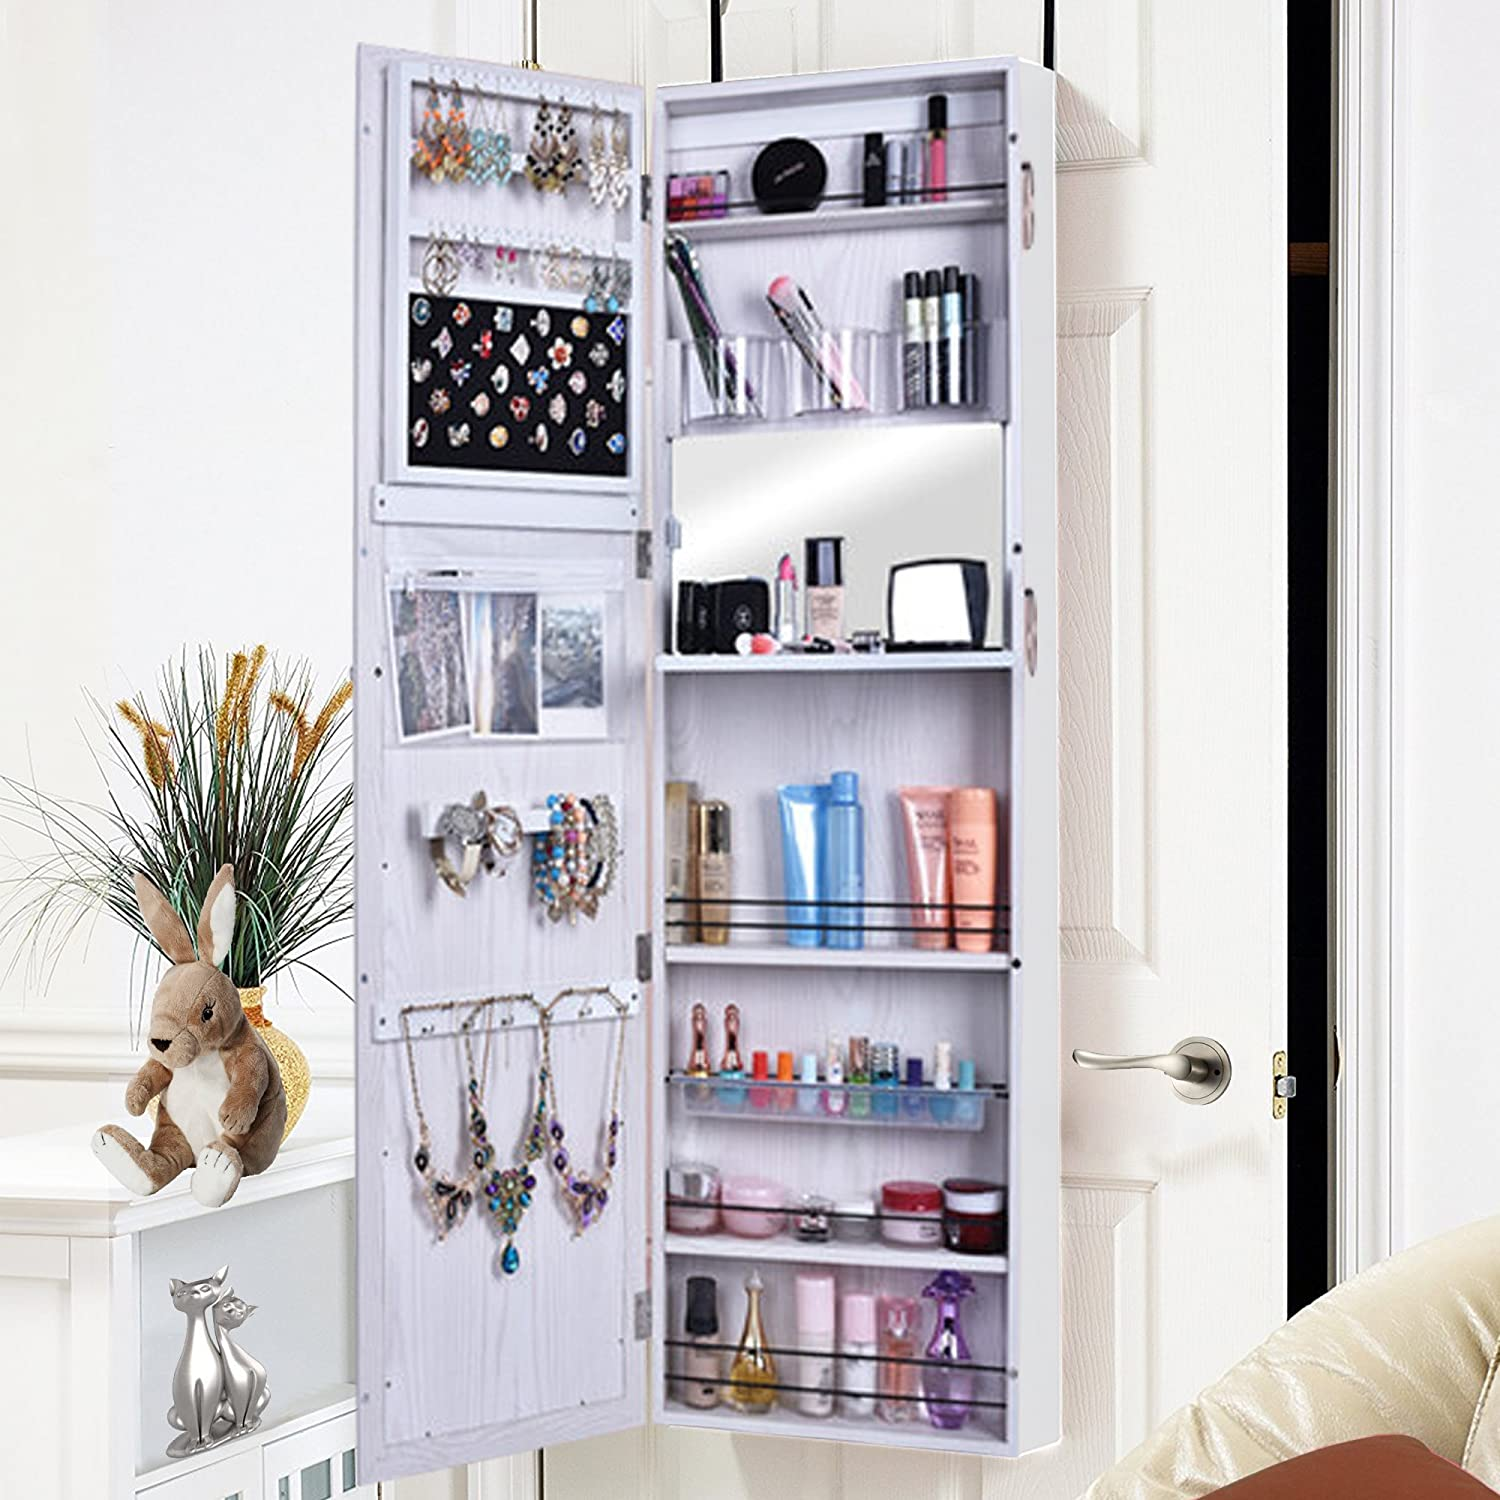 Shelving Solutions Jewelry Cabinet Armoire Mirrored Jewelry Armoire Door  Wall Mounted (White2)